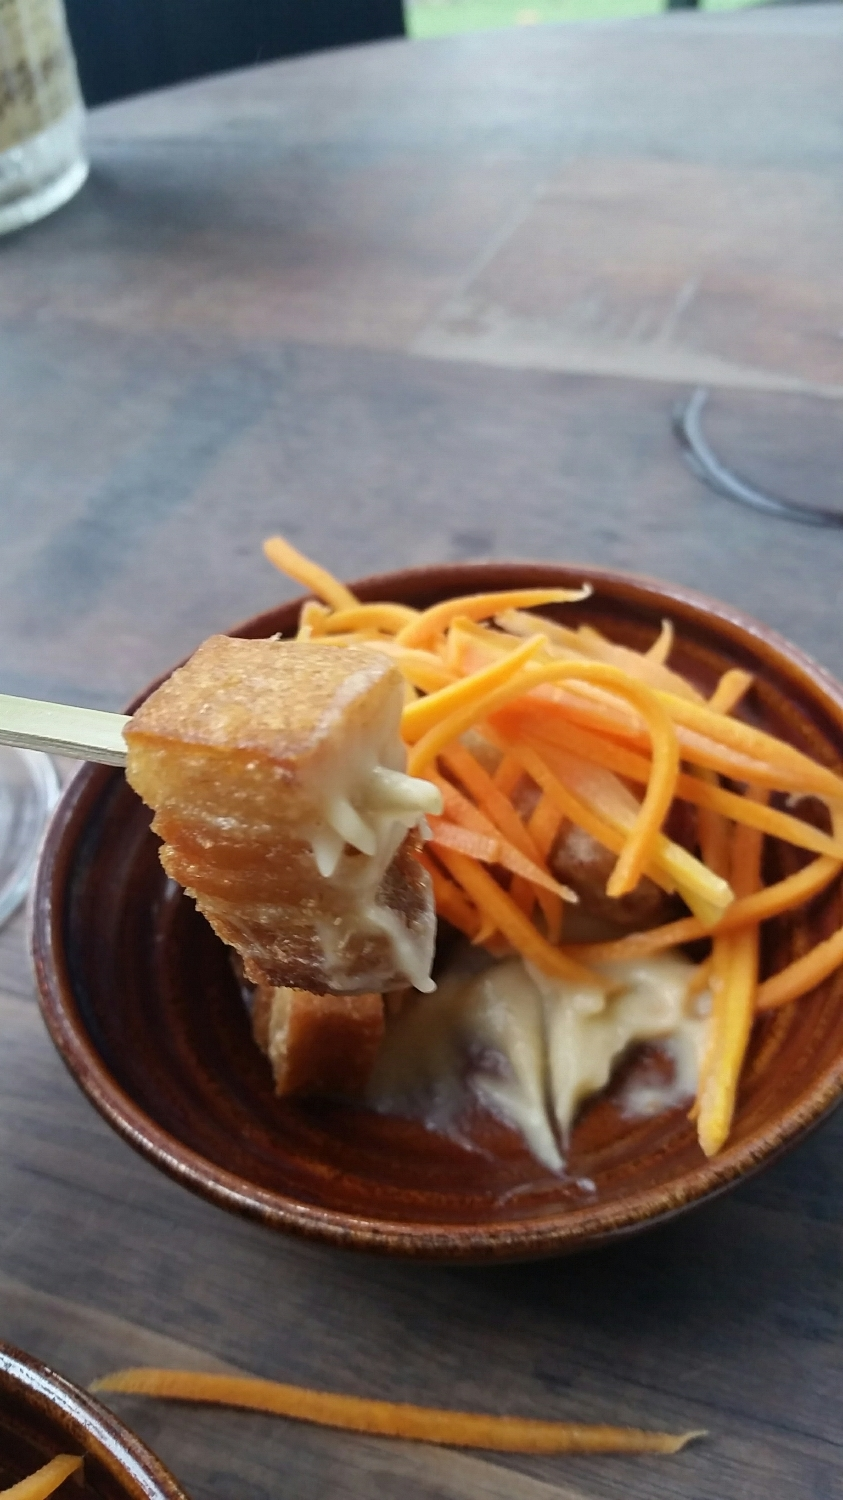 Pork belly covered in pickled carrots and sitting on a bed of a sweet apple puree. It was crispy on the outside then rich and fatty from the inside.